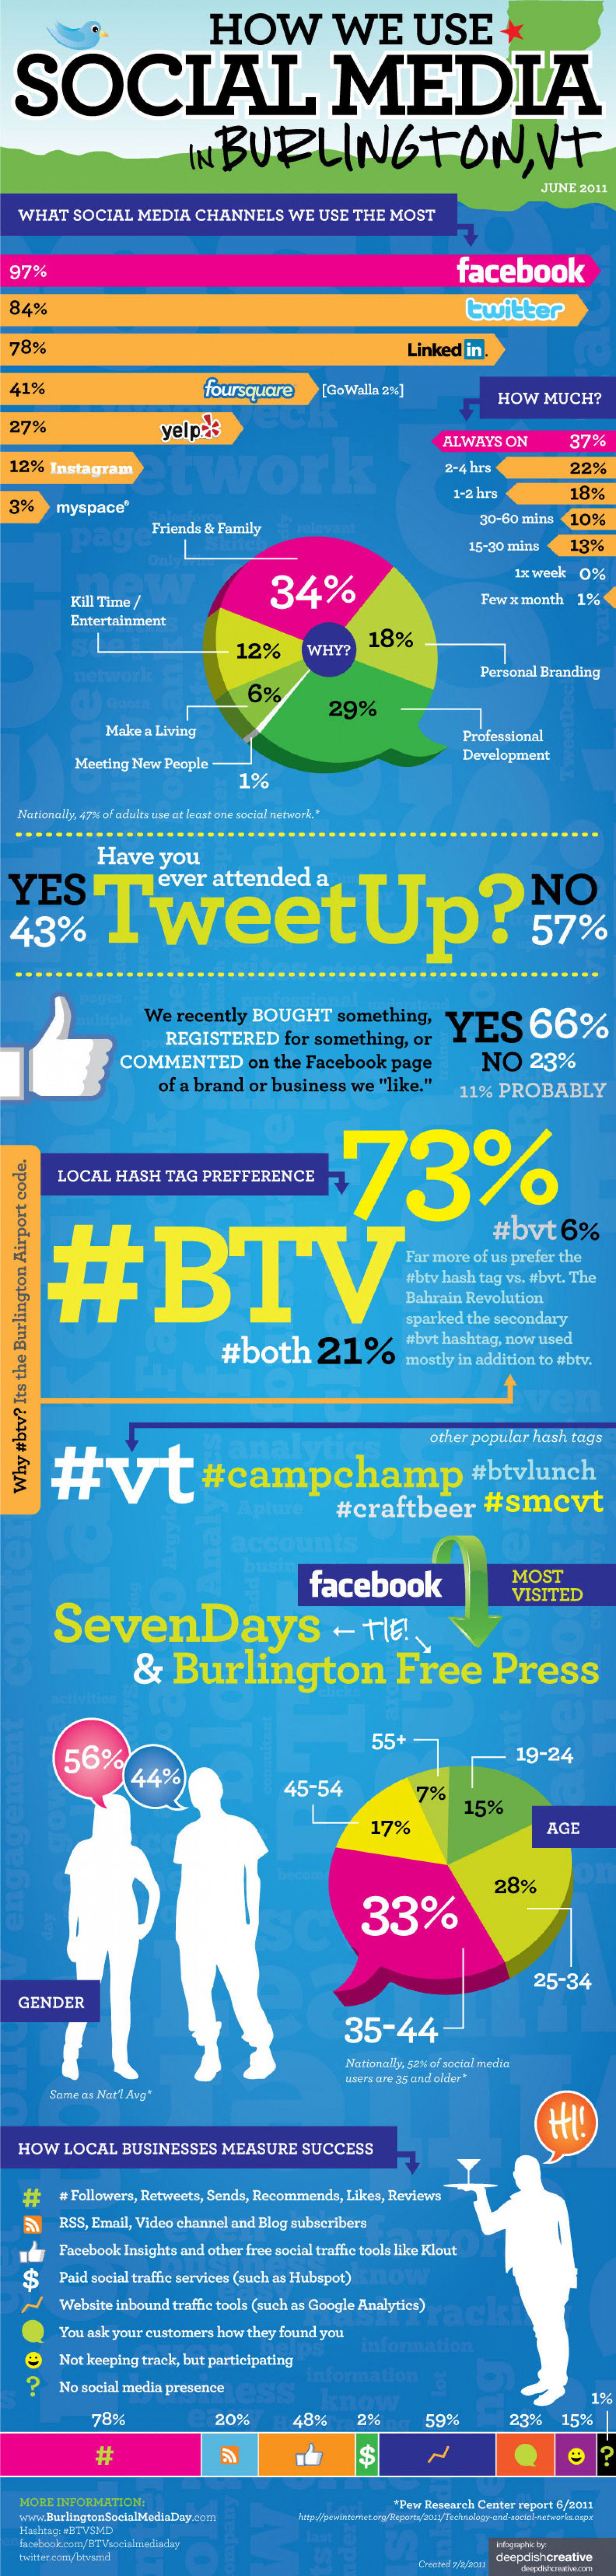 How We Use Social Media in Burlington VT Infographic